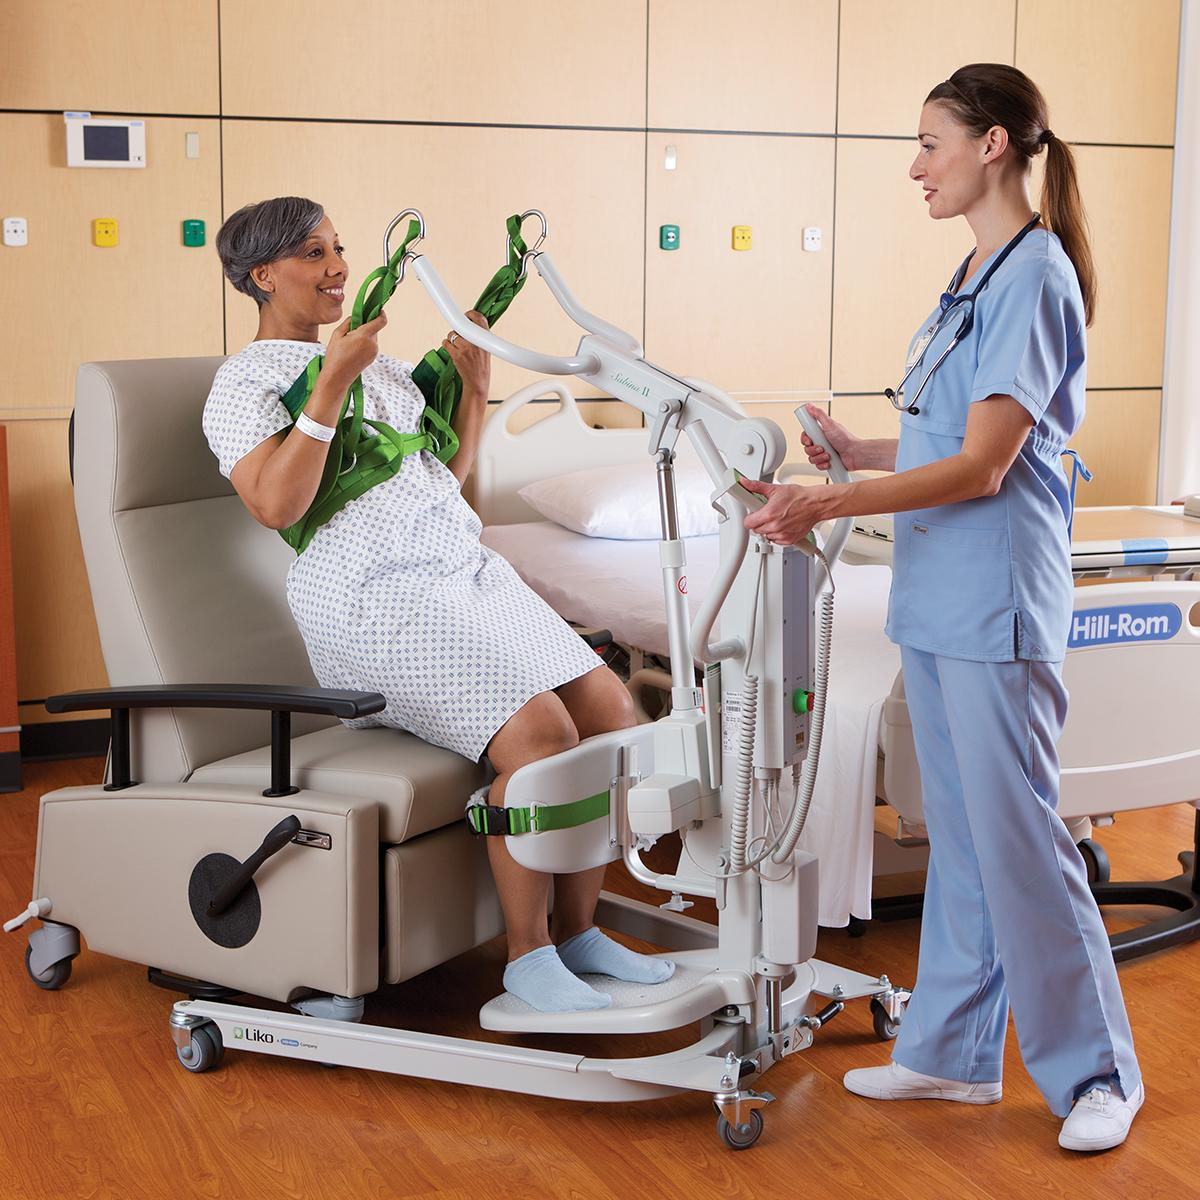 A clinician helps an older female patient stand from a chair using a Sabina II mobile lift